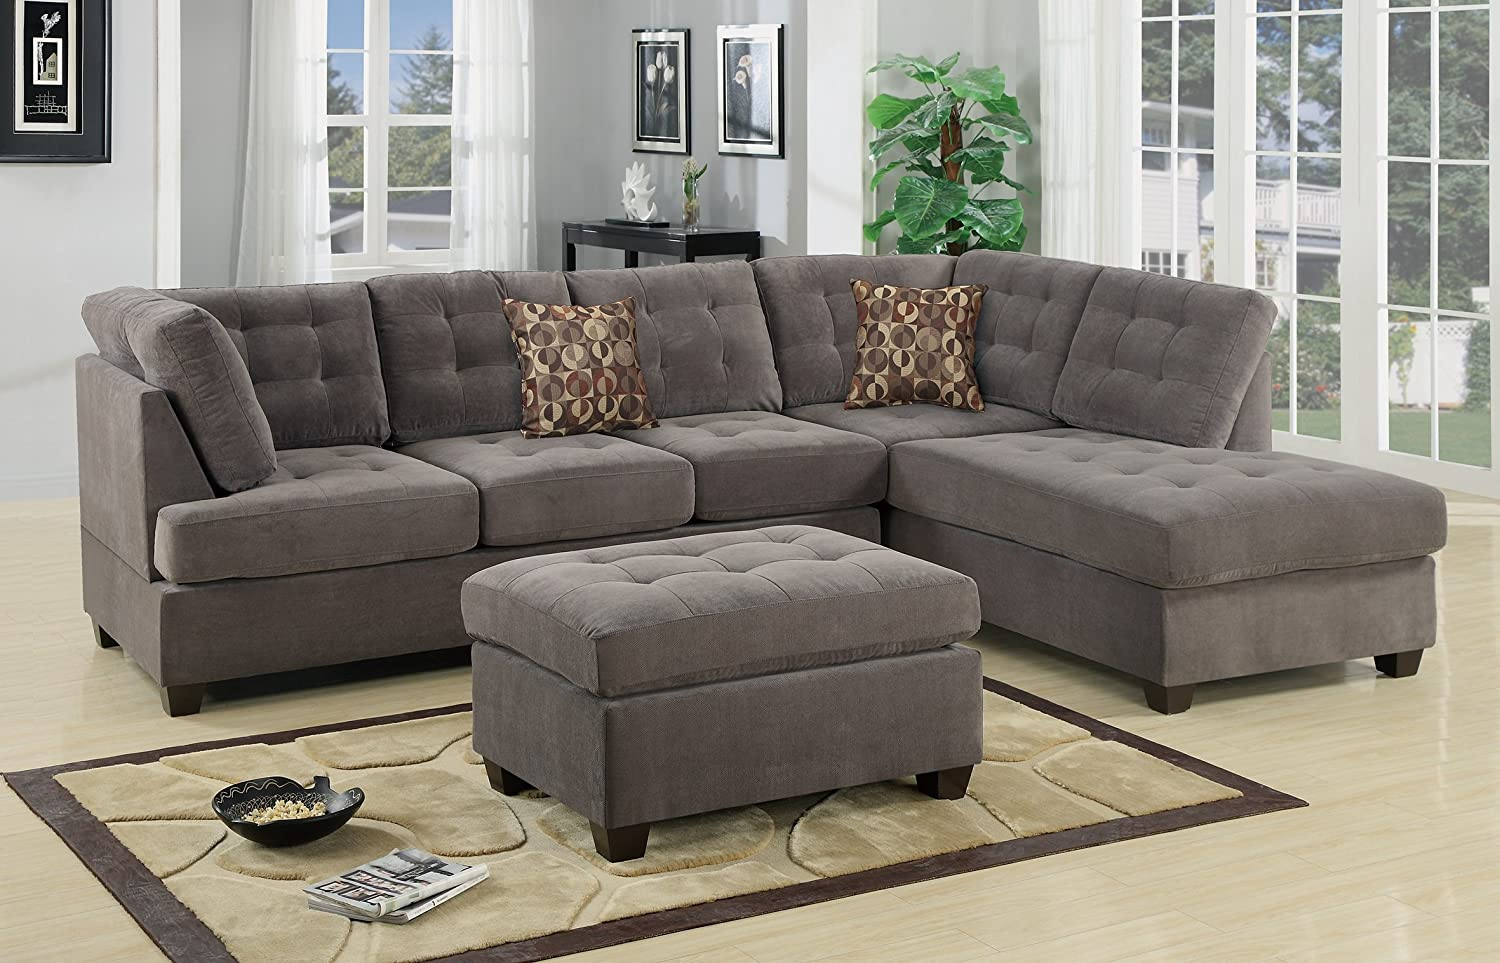 Amazon.com: Odessa Reversible Sectional Sofa Set With Ottoman Upholstered  In Charcoal Waffle Suede: Kitchen U0026 Dining